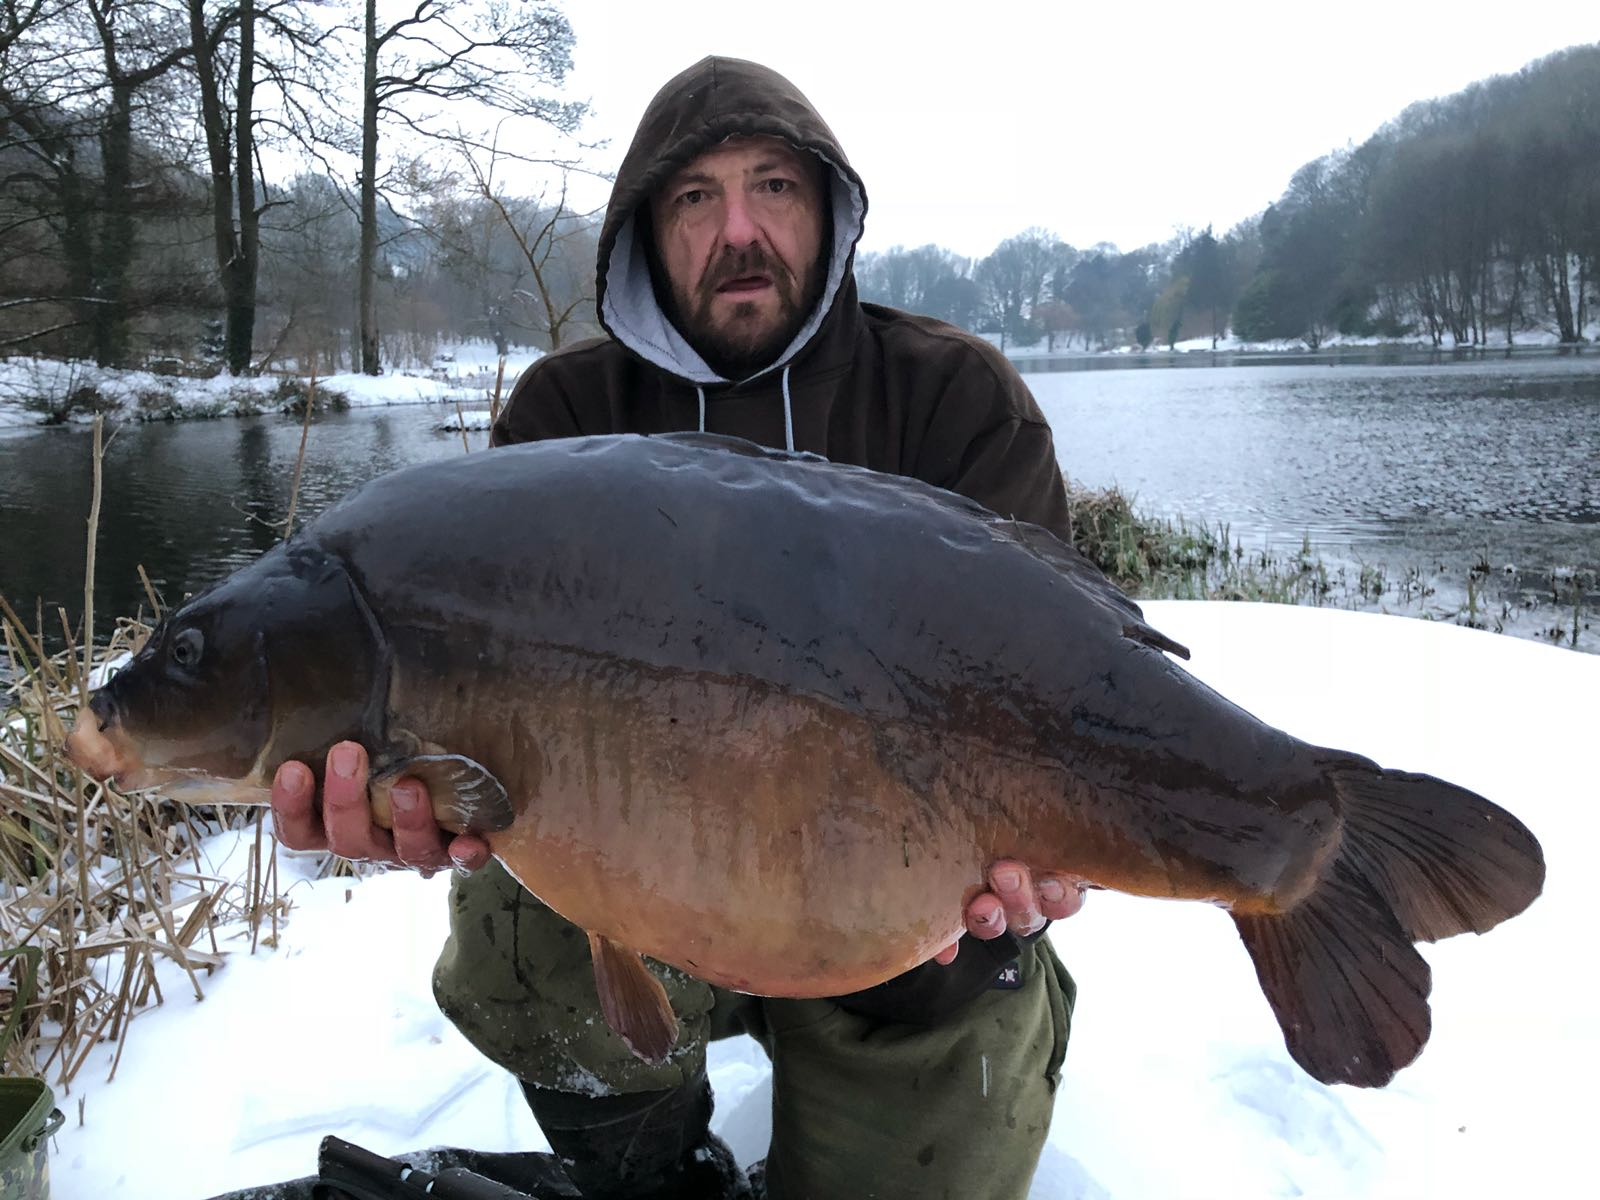 Another 30lb-plus mirror, this one went 32lb 4oz